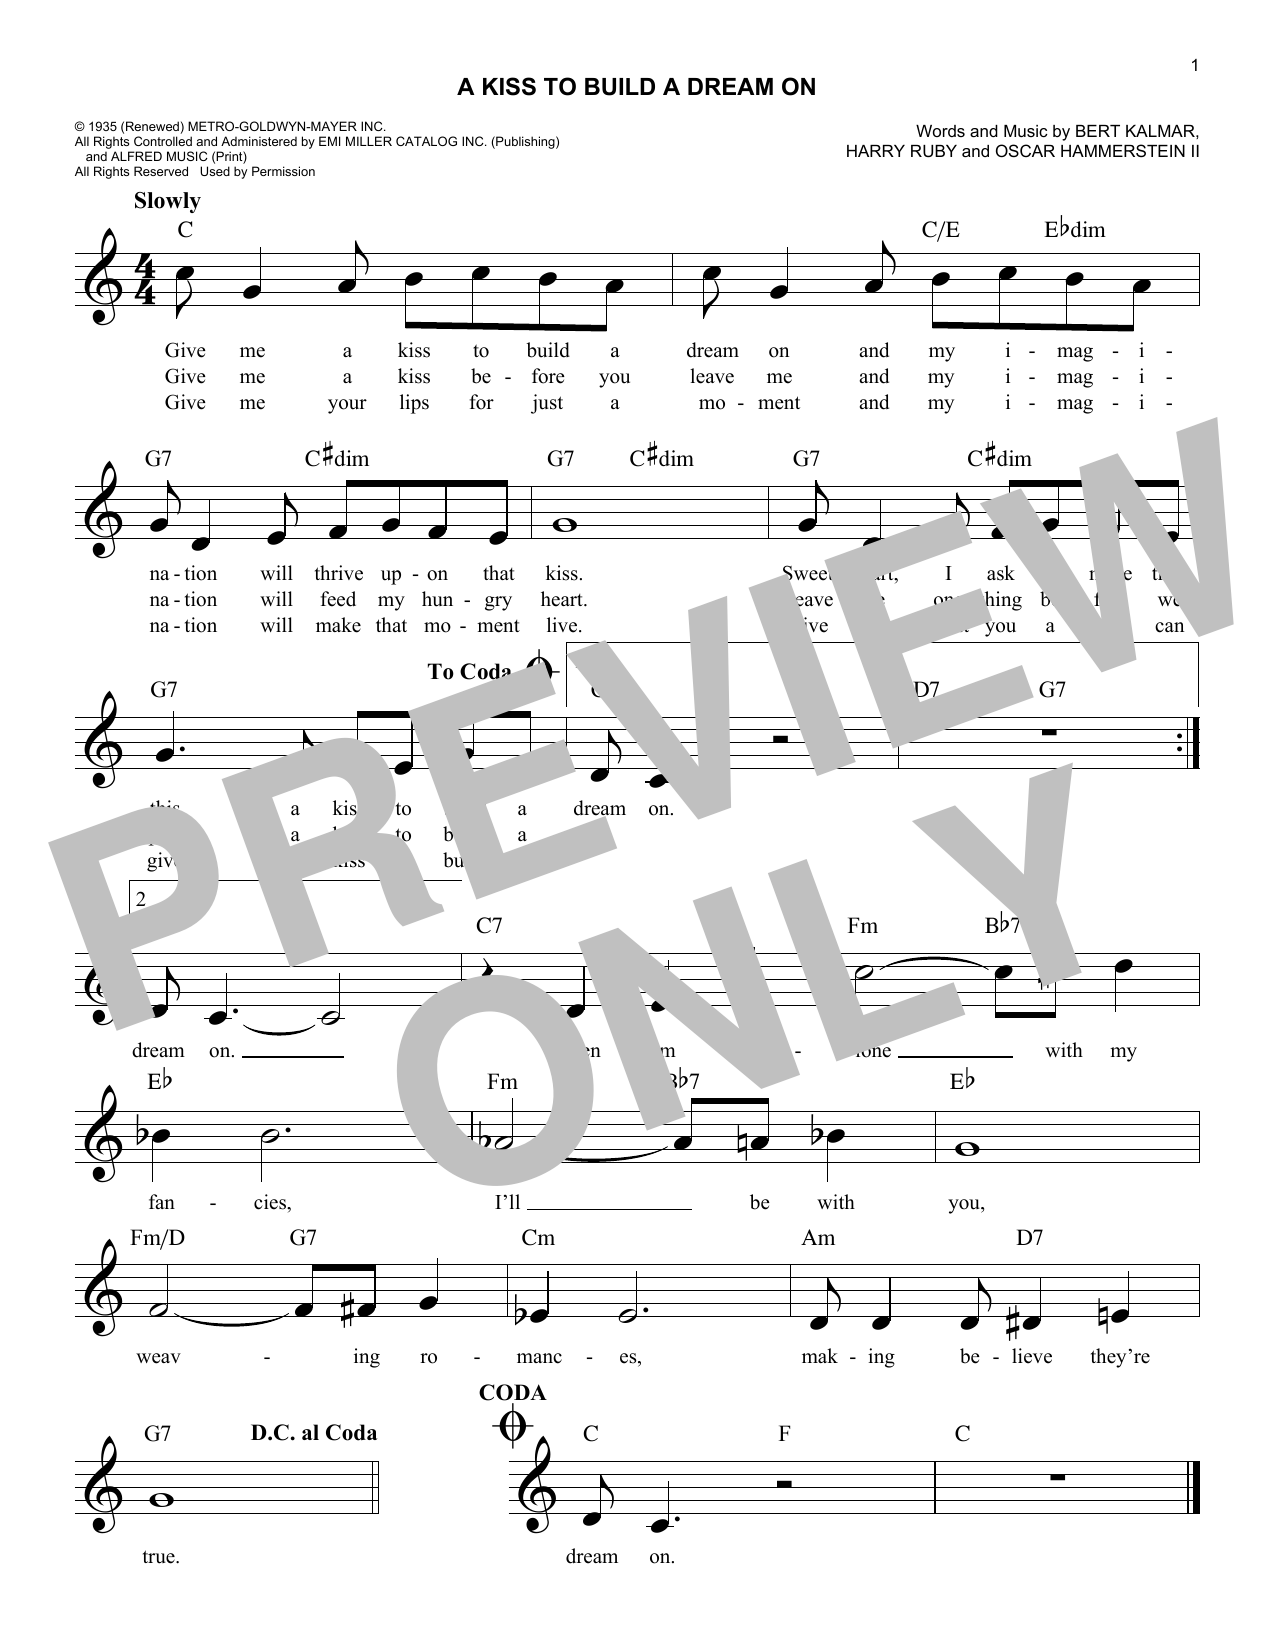 Oscar Hammerstein II A Kiss To Build A Dream On sheet music notes and chords. Download Printable PDF.